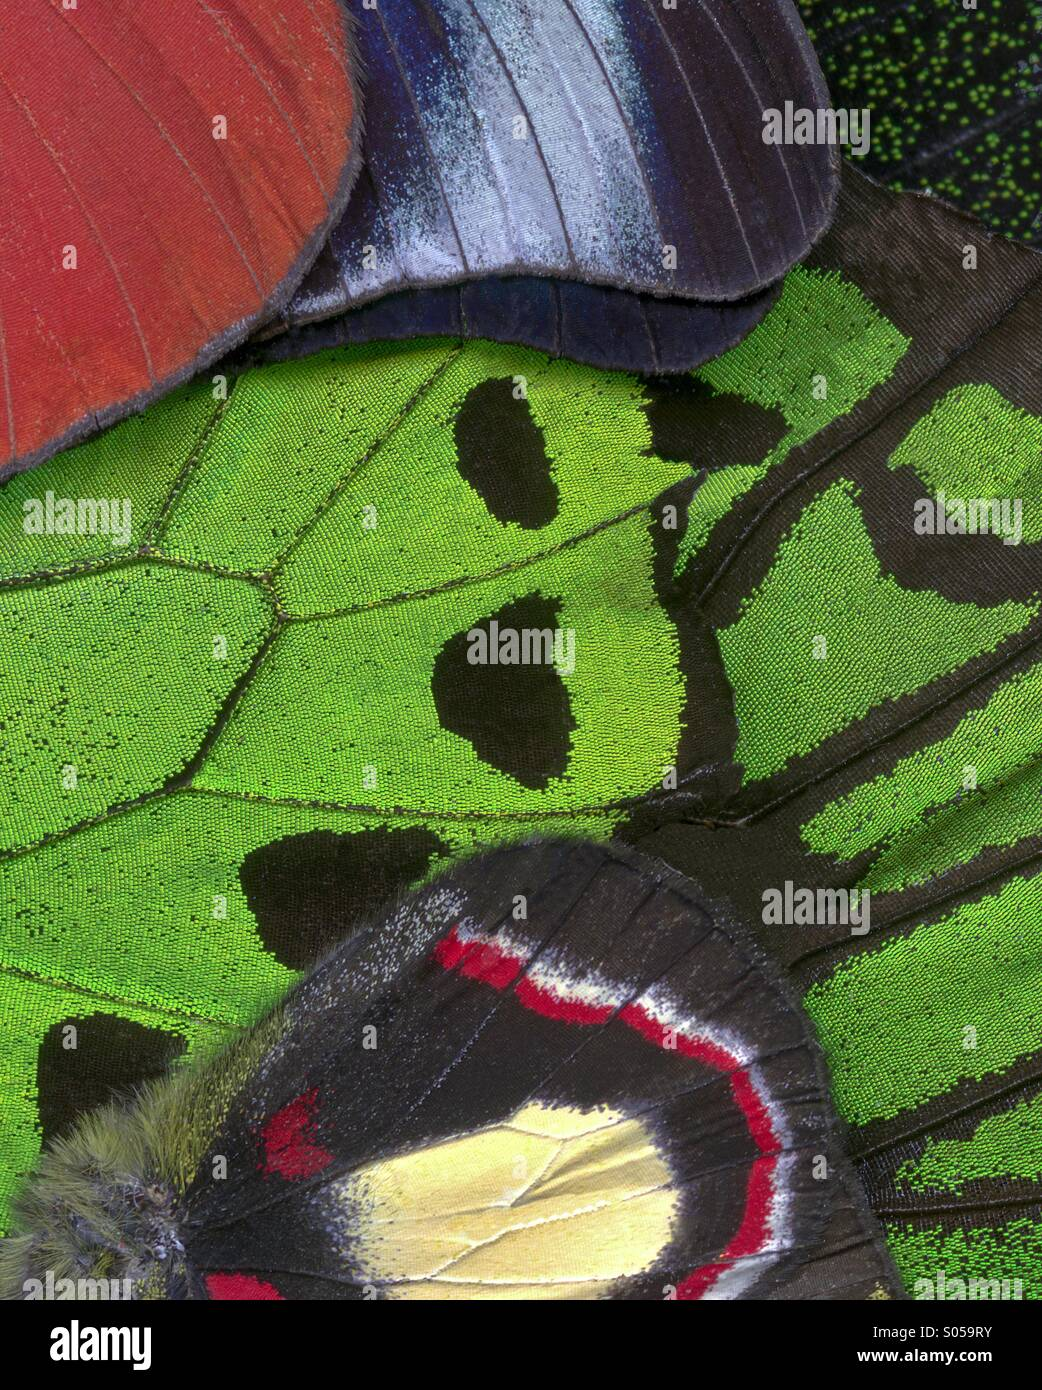 Moth Wings Abstration - Stock Image